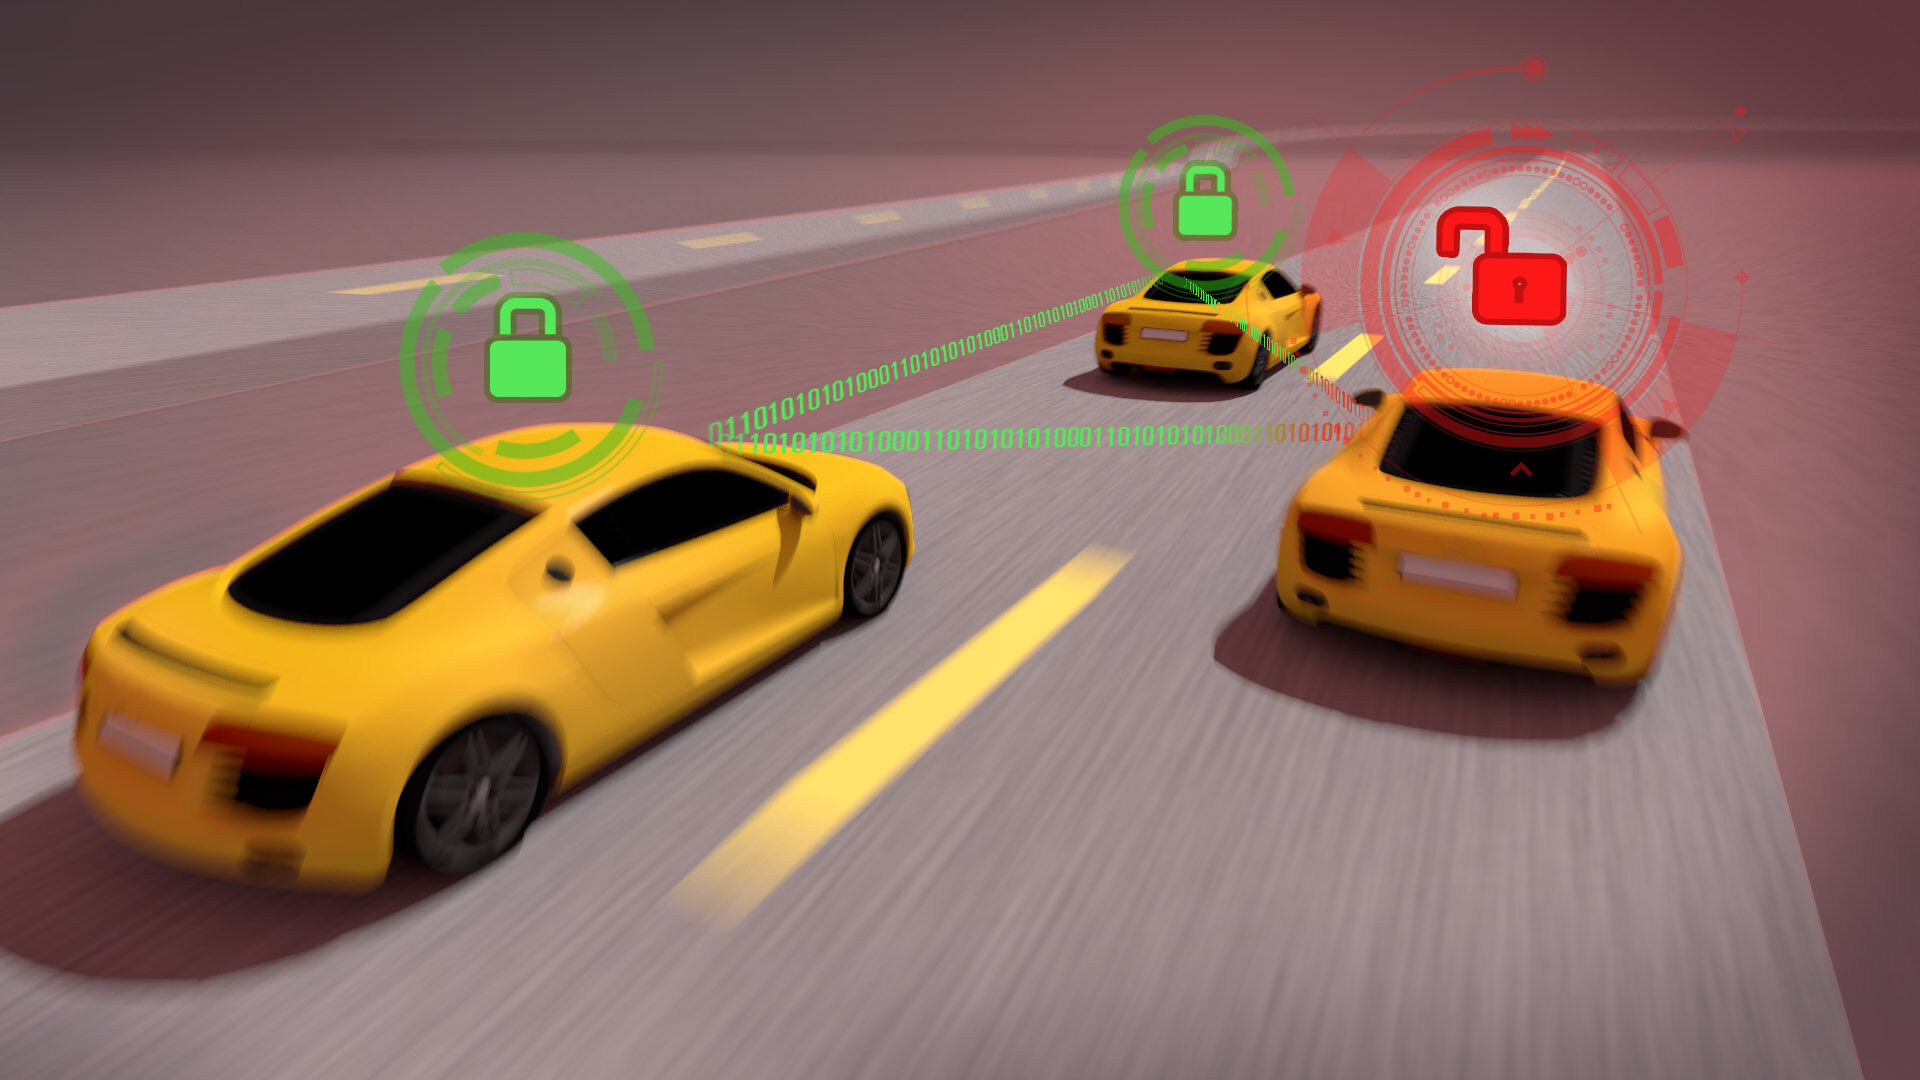 Cybersecurity in cars